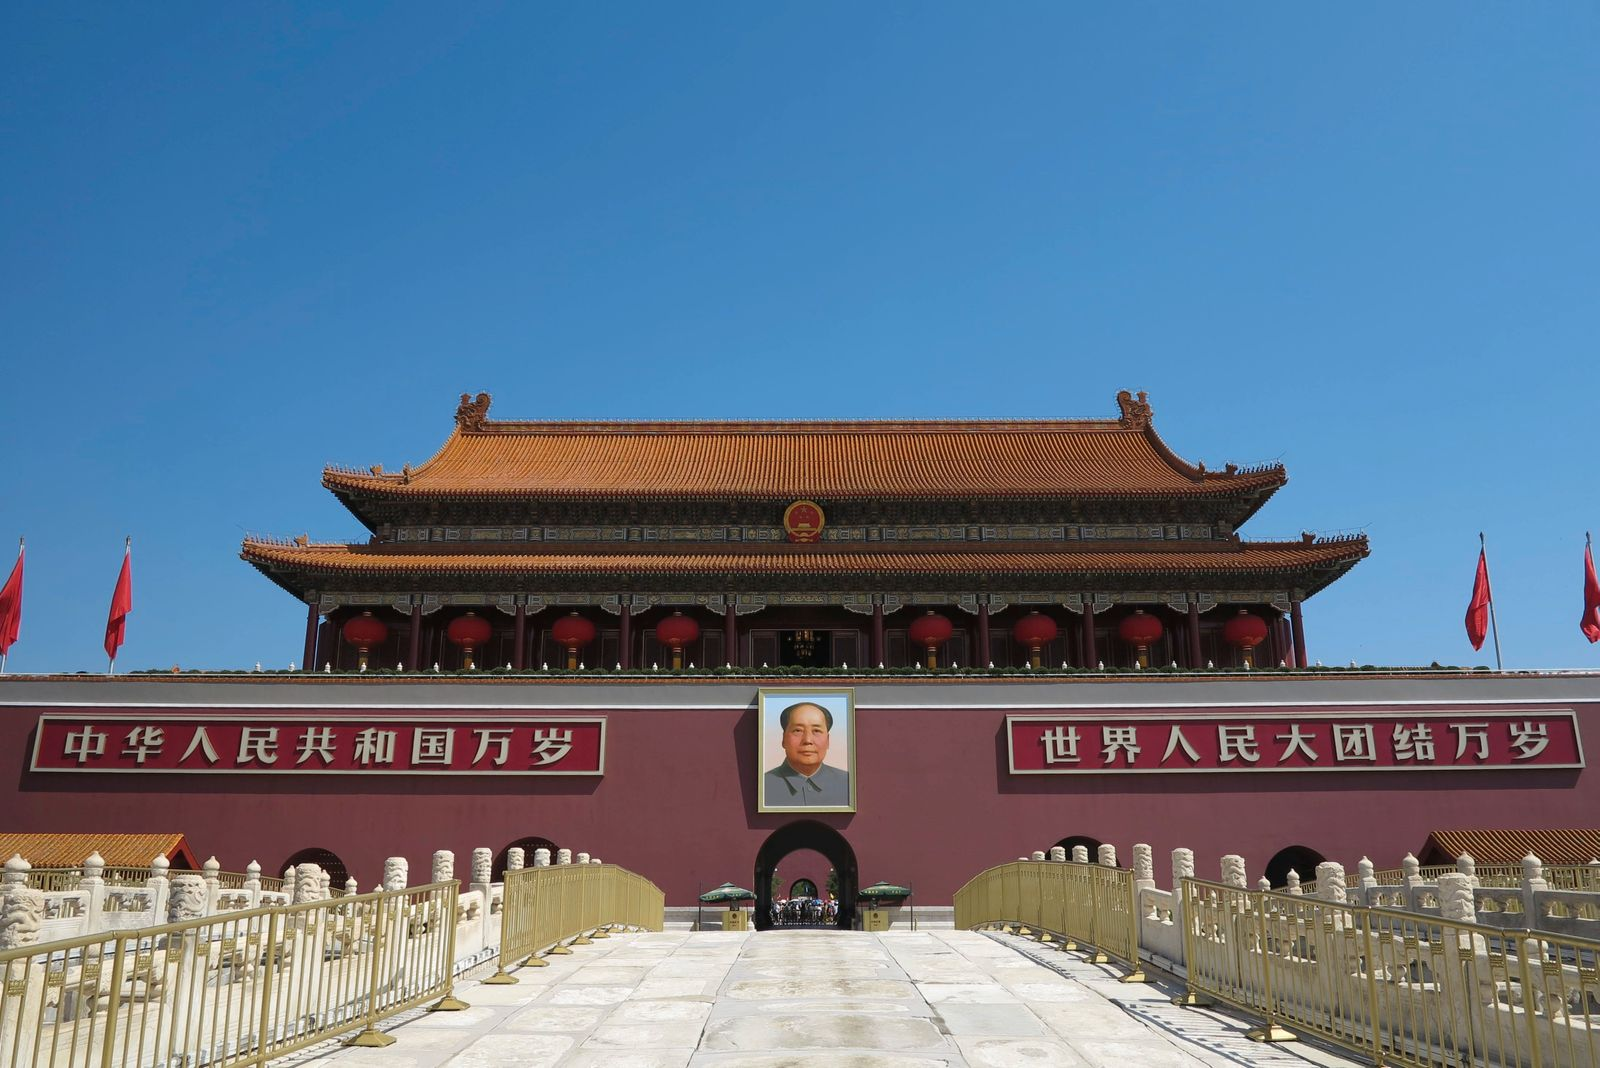 Tiananmen Square is located in the center of Beijing, the